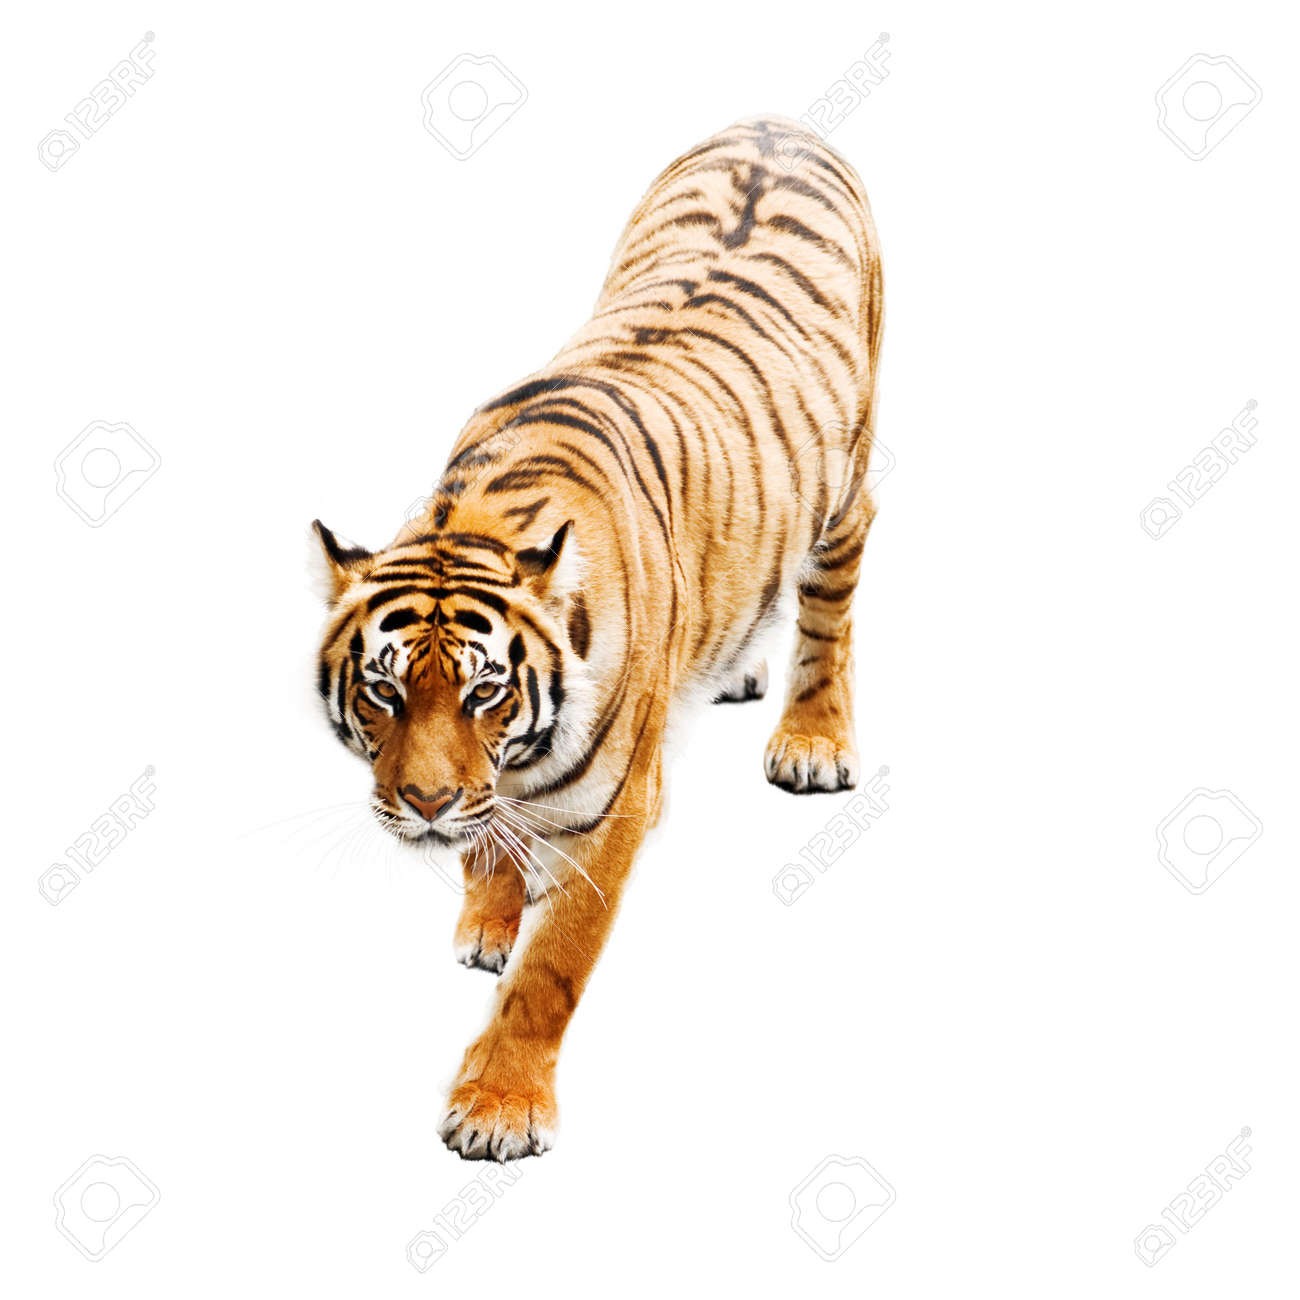 tiger isolated on white background stock photo picture and royalty